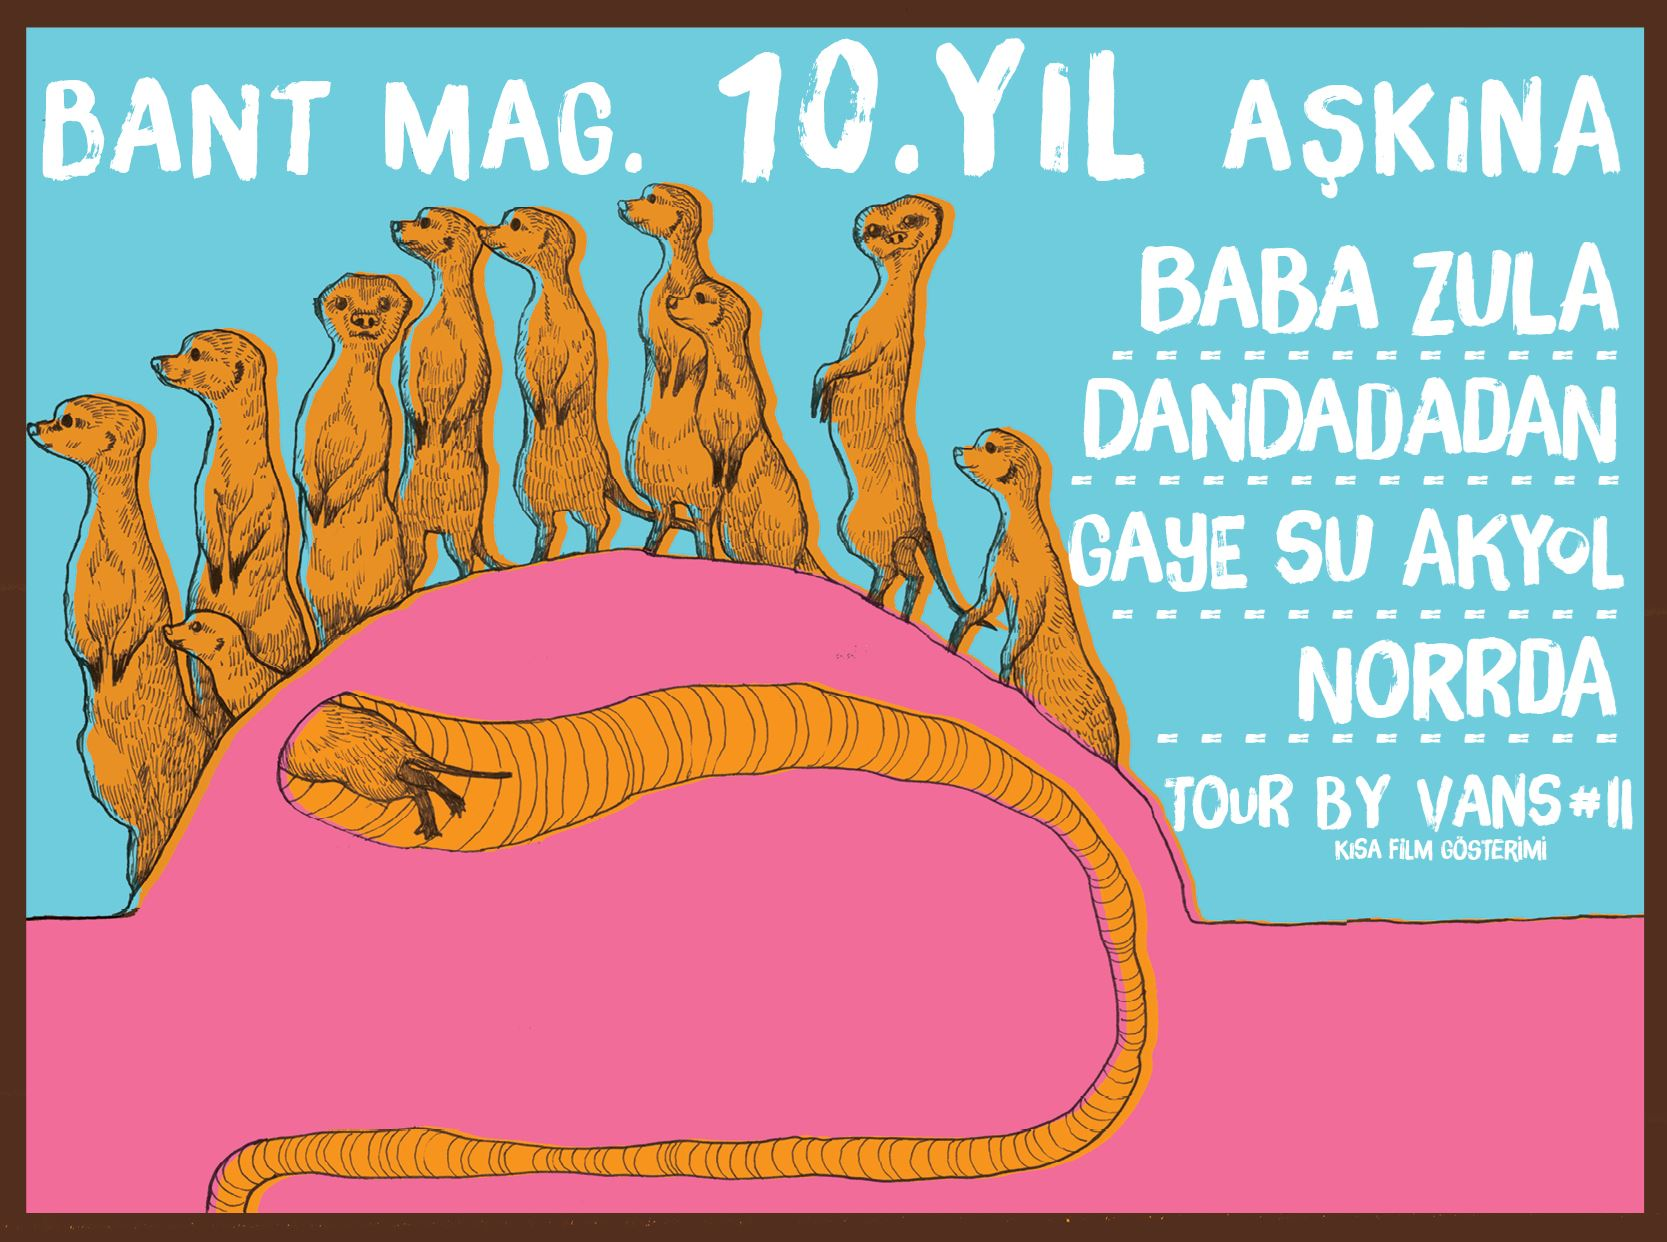 Bant Mag. presents: For the Love of 10th Anniversary - BaBa ZuLa, Dandadadan, Gaye Su Akyol, Norrda